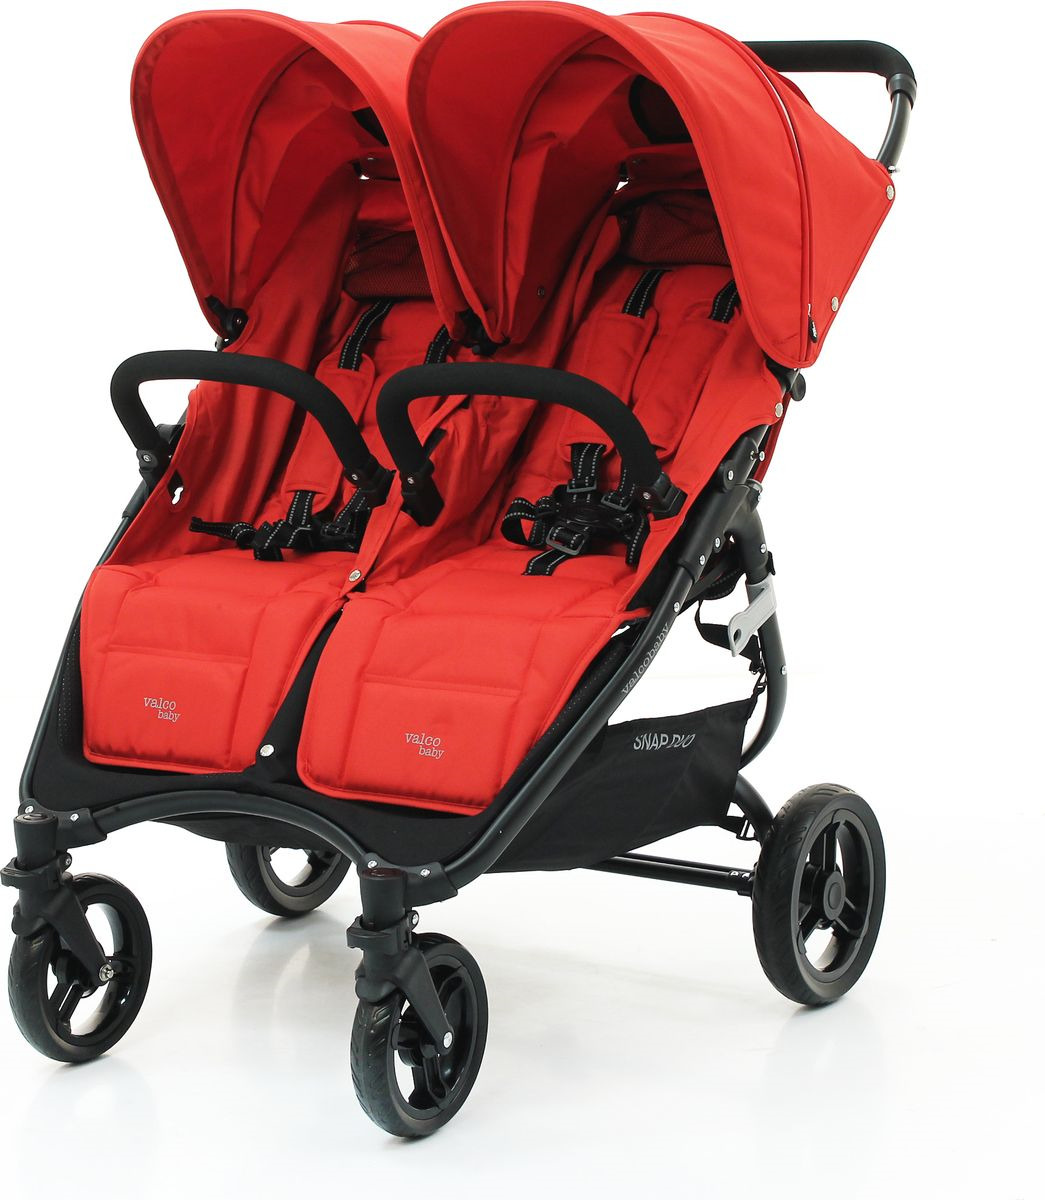 Коляска для двойни Valco Baby Snap Duo Fire red